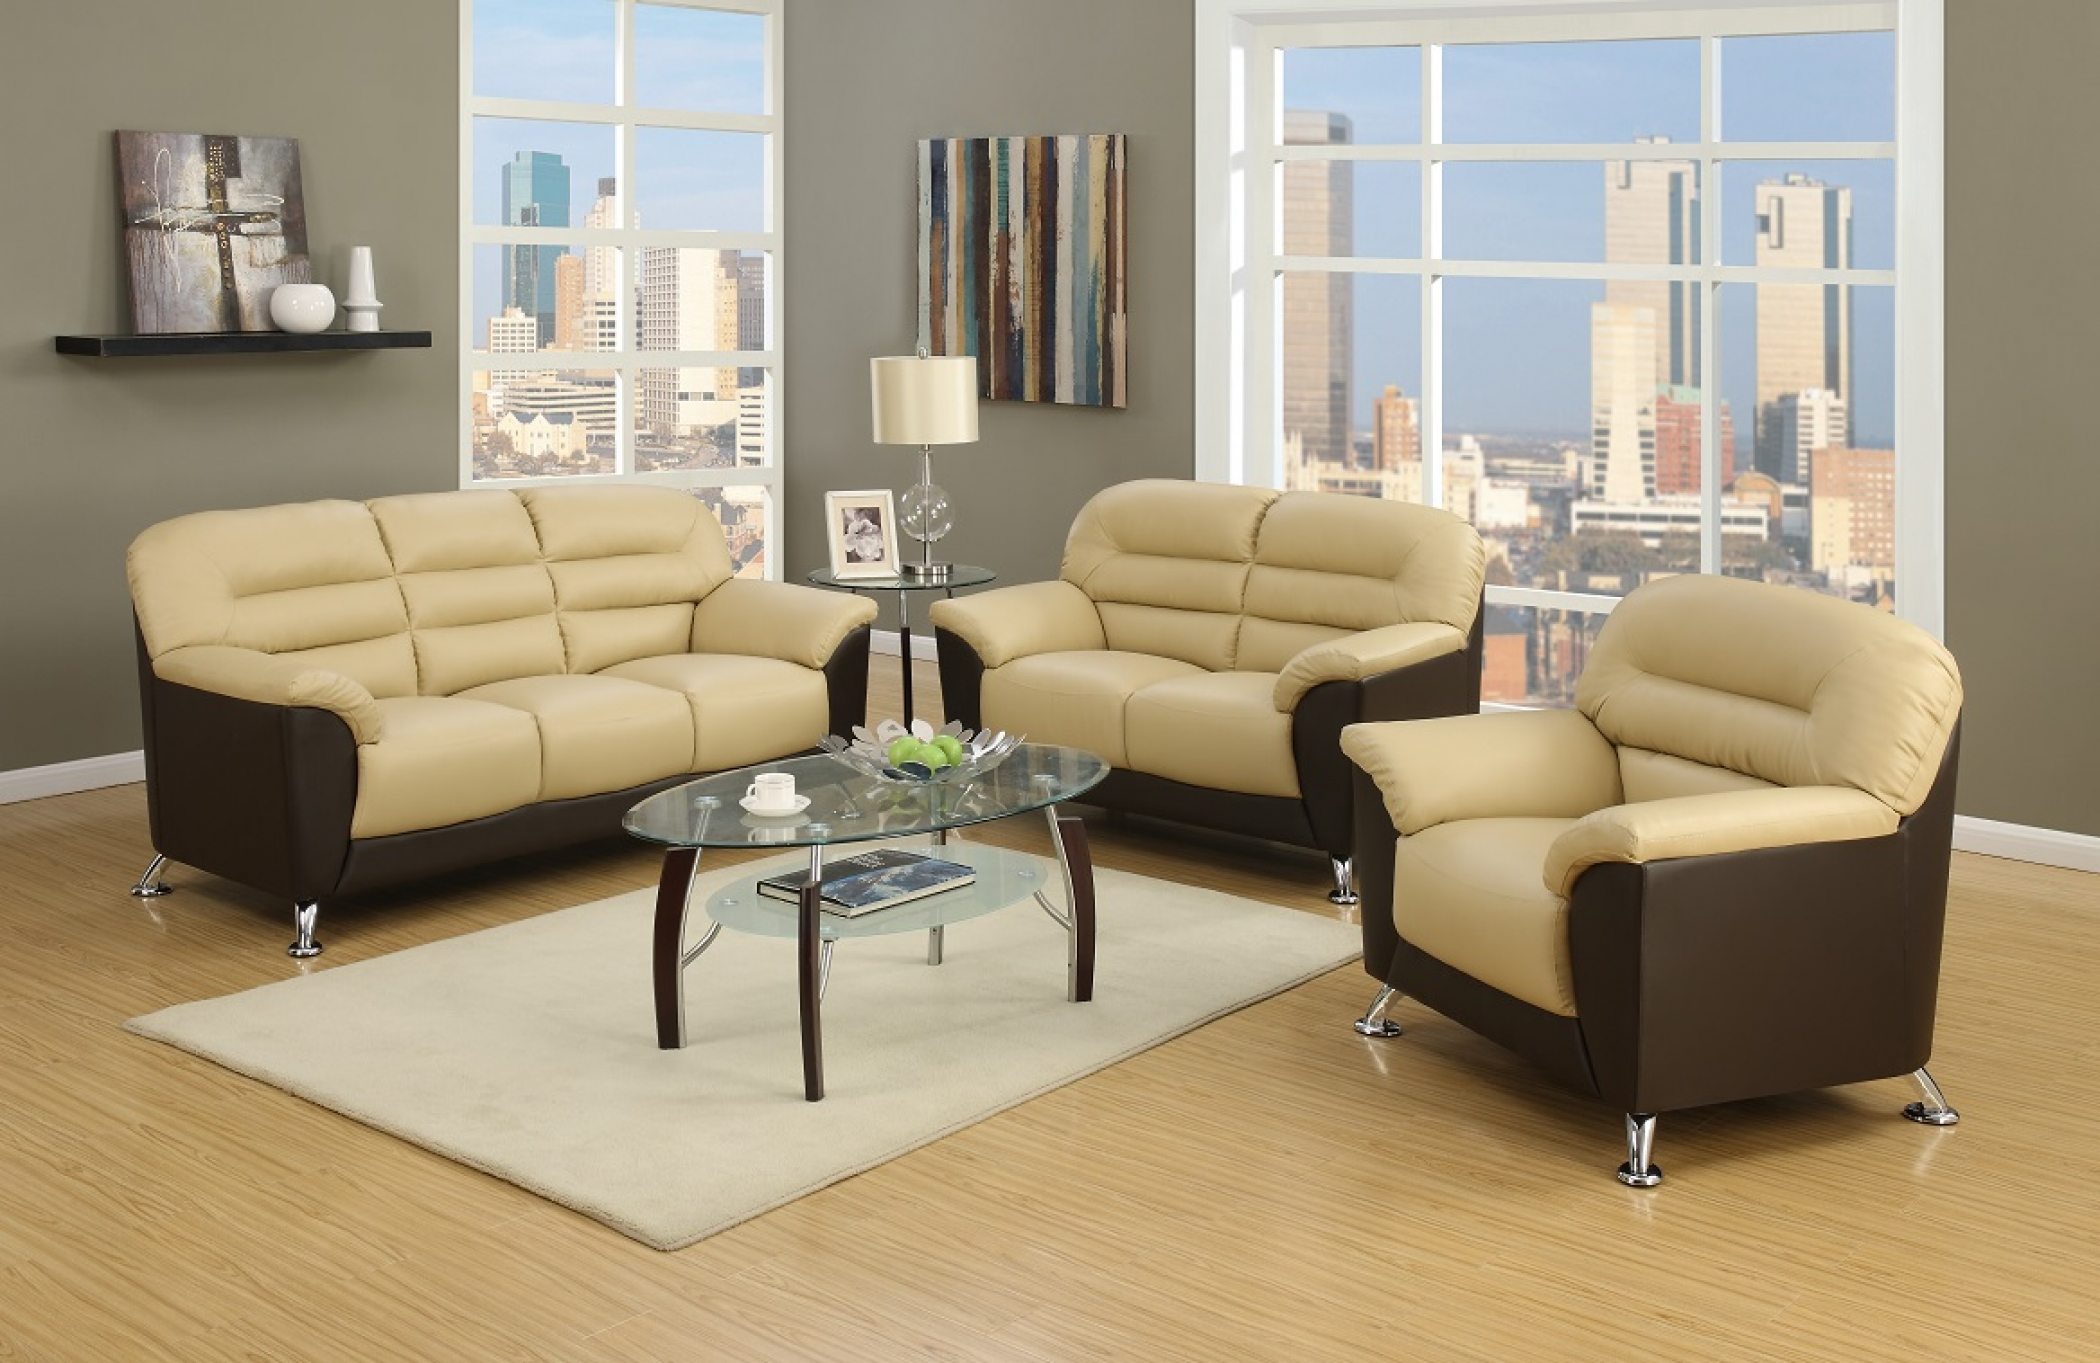 SPECIAL LEATHER SOFA SETS all colors